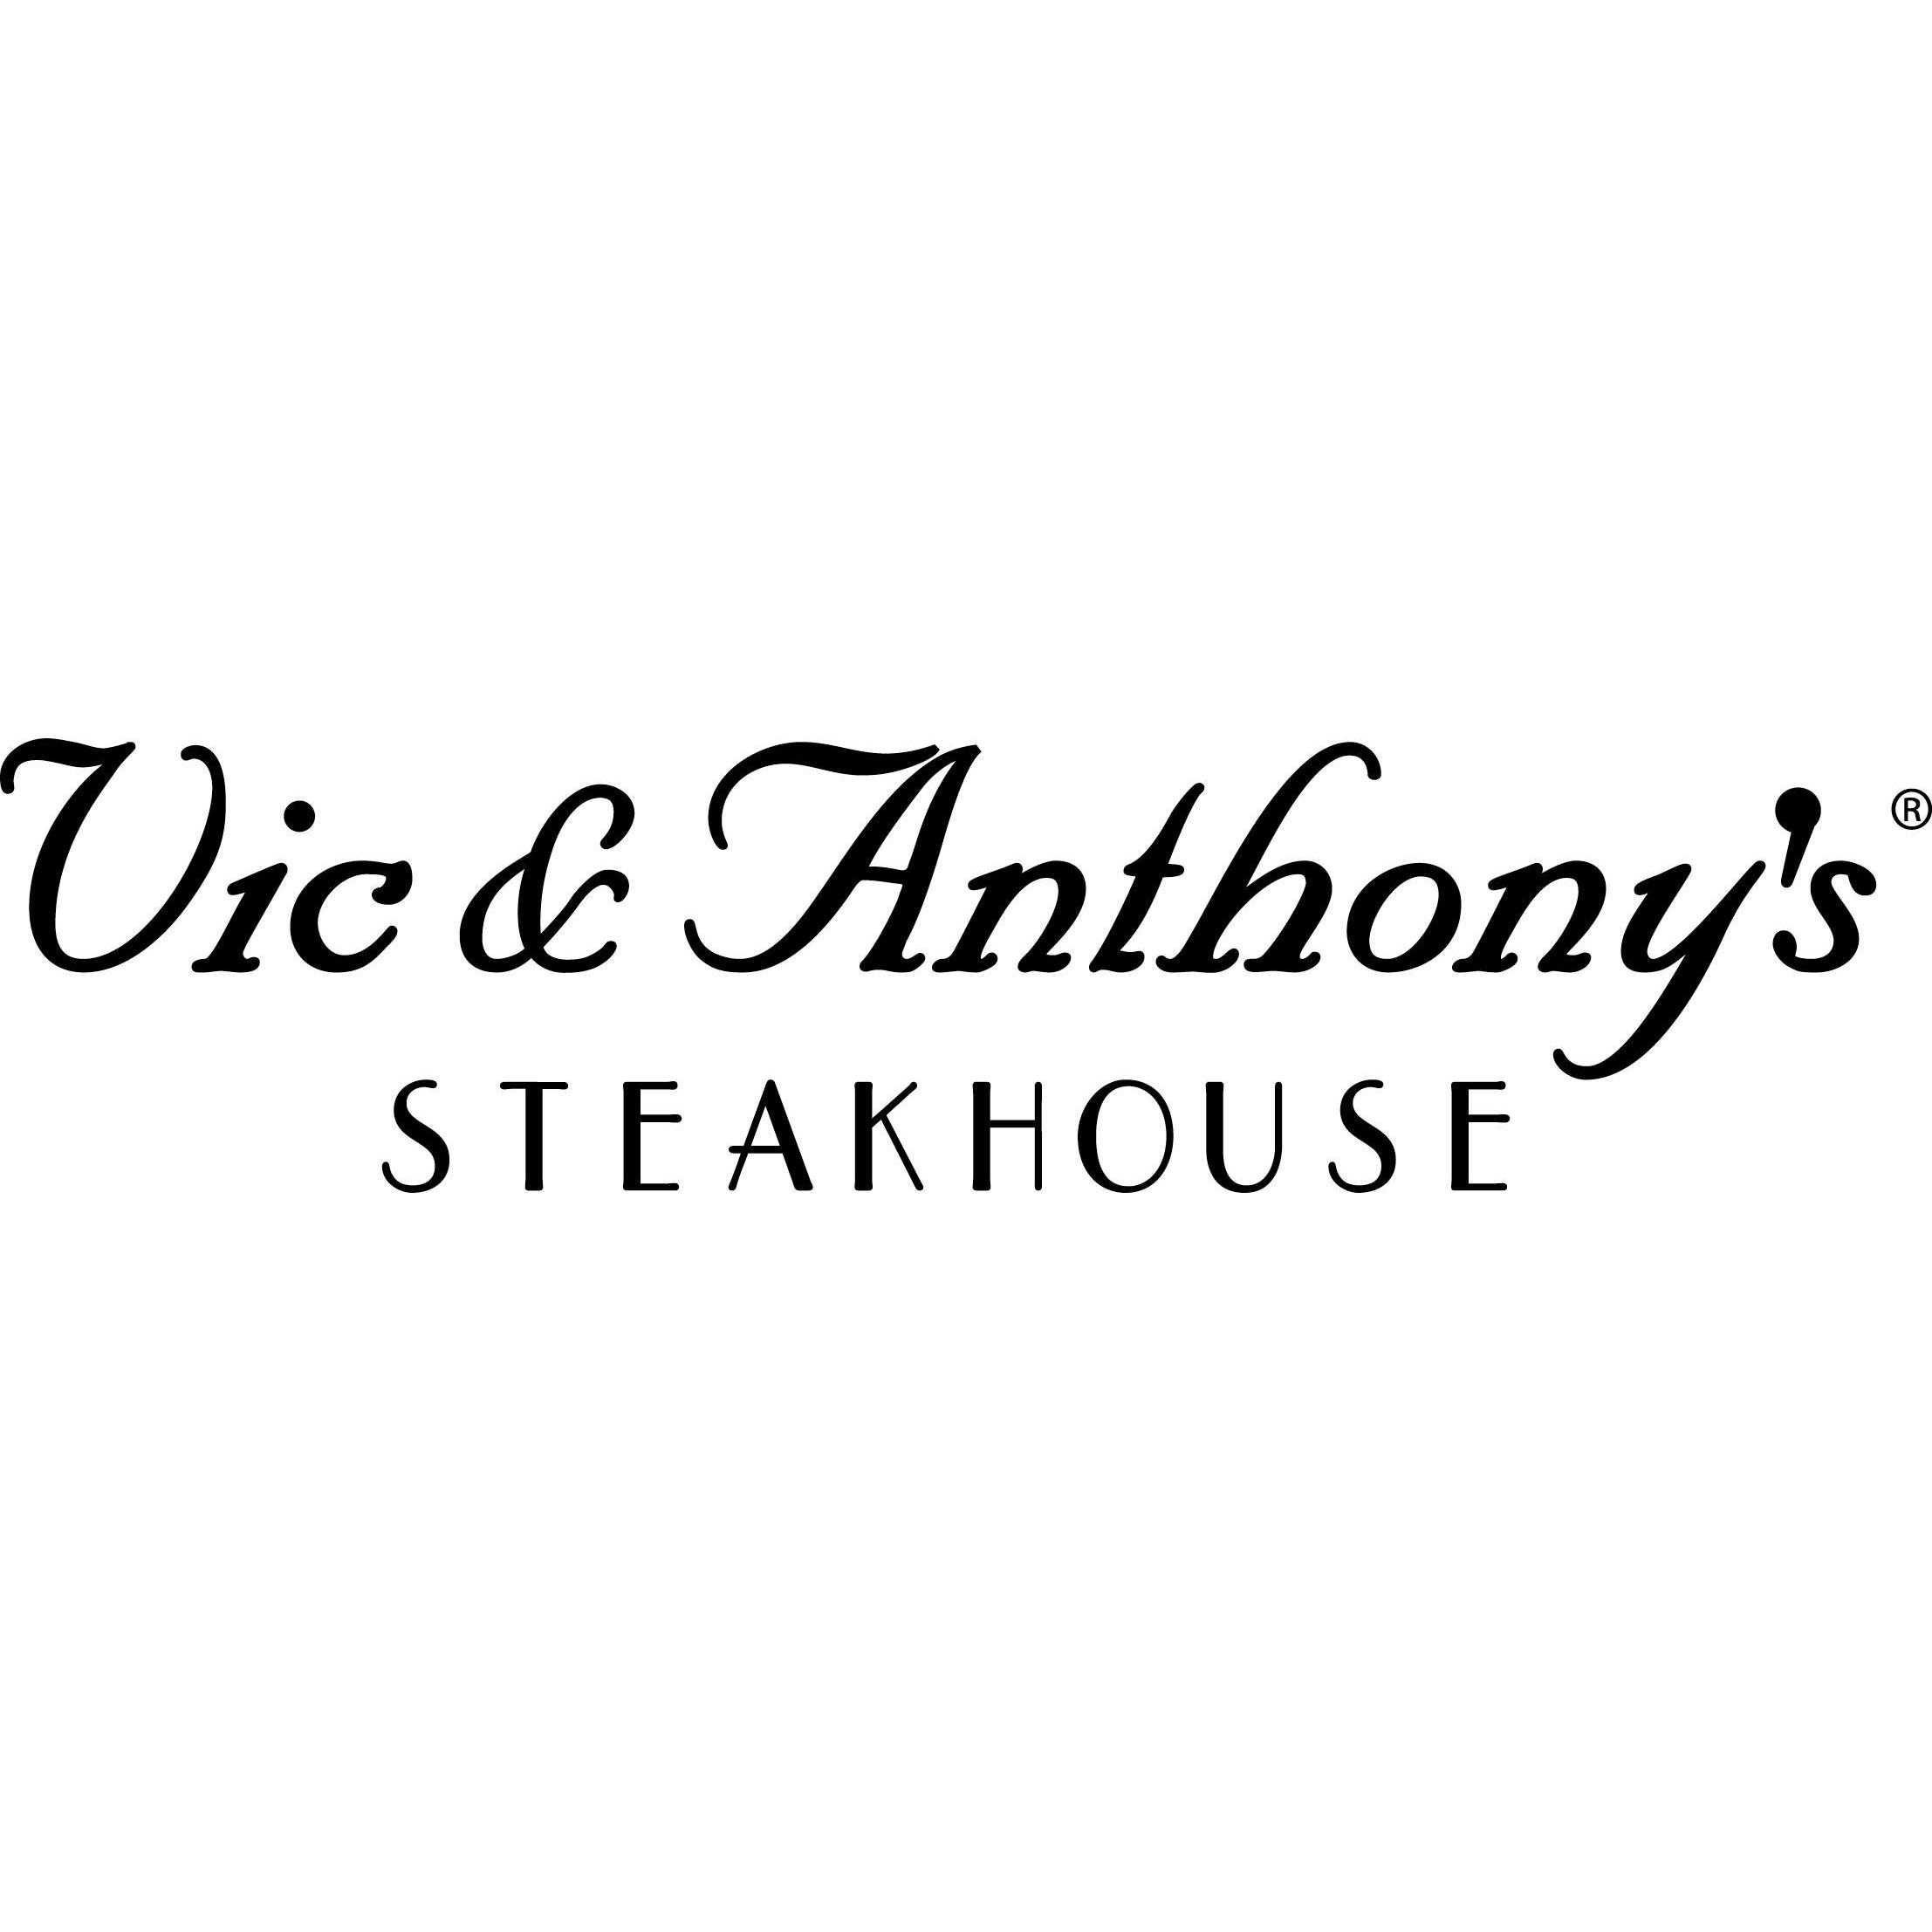 Vic & Anthony's Steakhouse - Lake Charles, LA - Restaurants